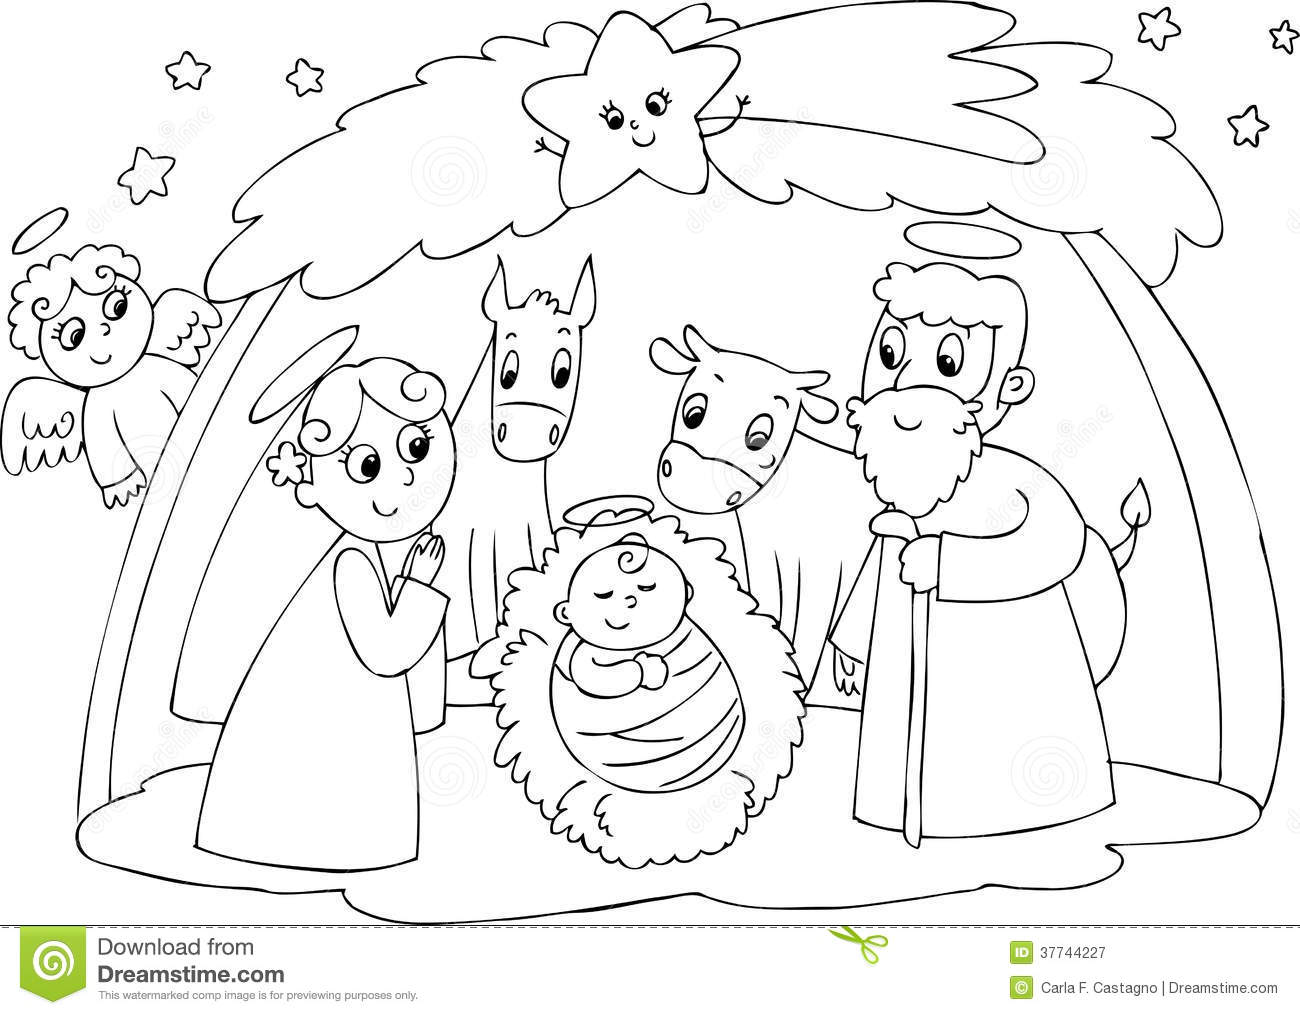 Clipart black mary joseph and jesus photo jpg royalty free stock Nativity: Mary Joseph And Jesus Royalty Free Stock Photography ... jpg royalty free stock